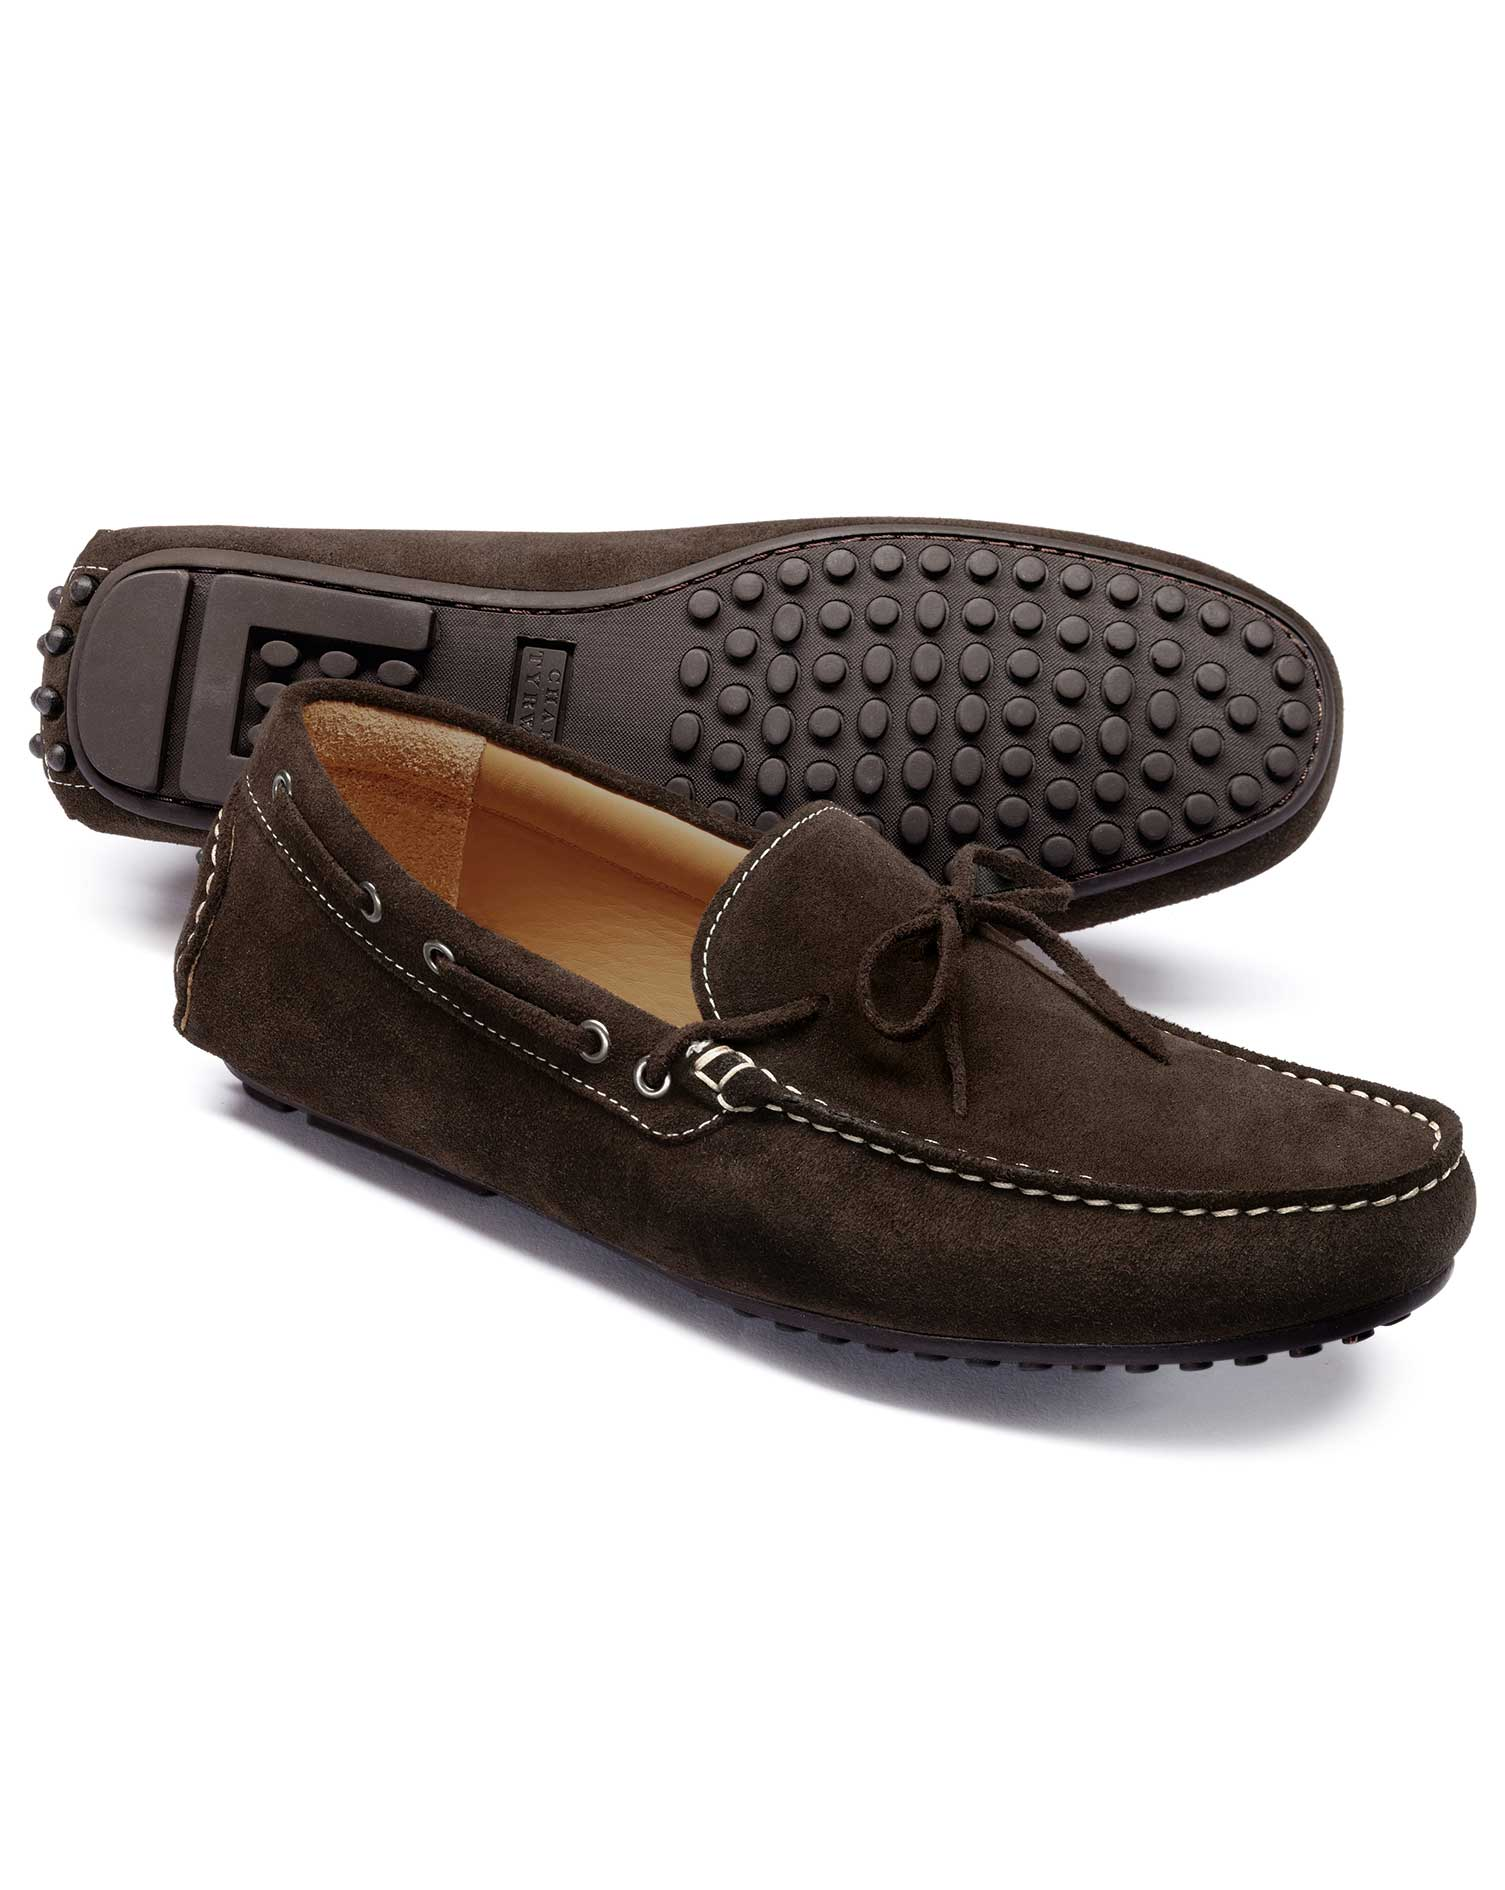 Chocolate Driving Shoe Size 12 R by Charles Tyrwhitt